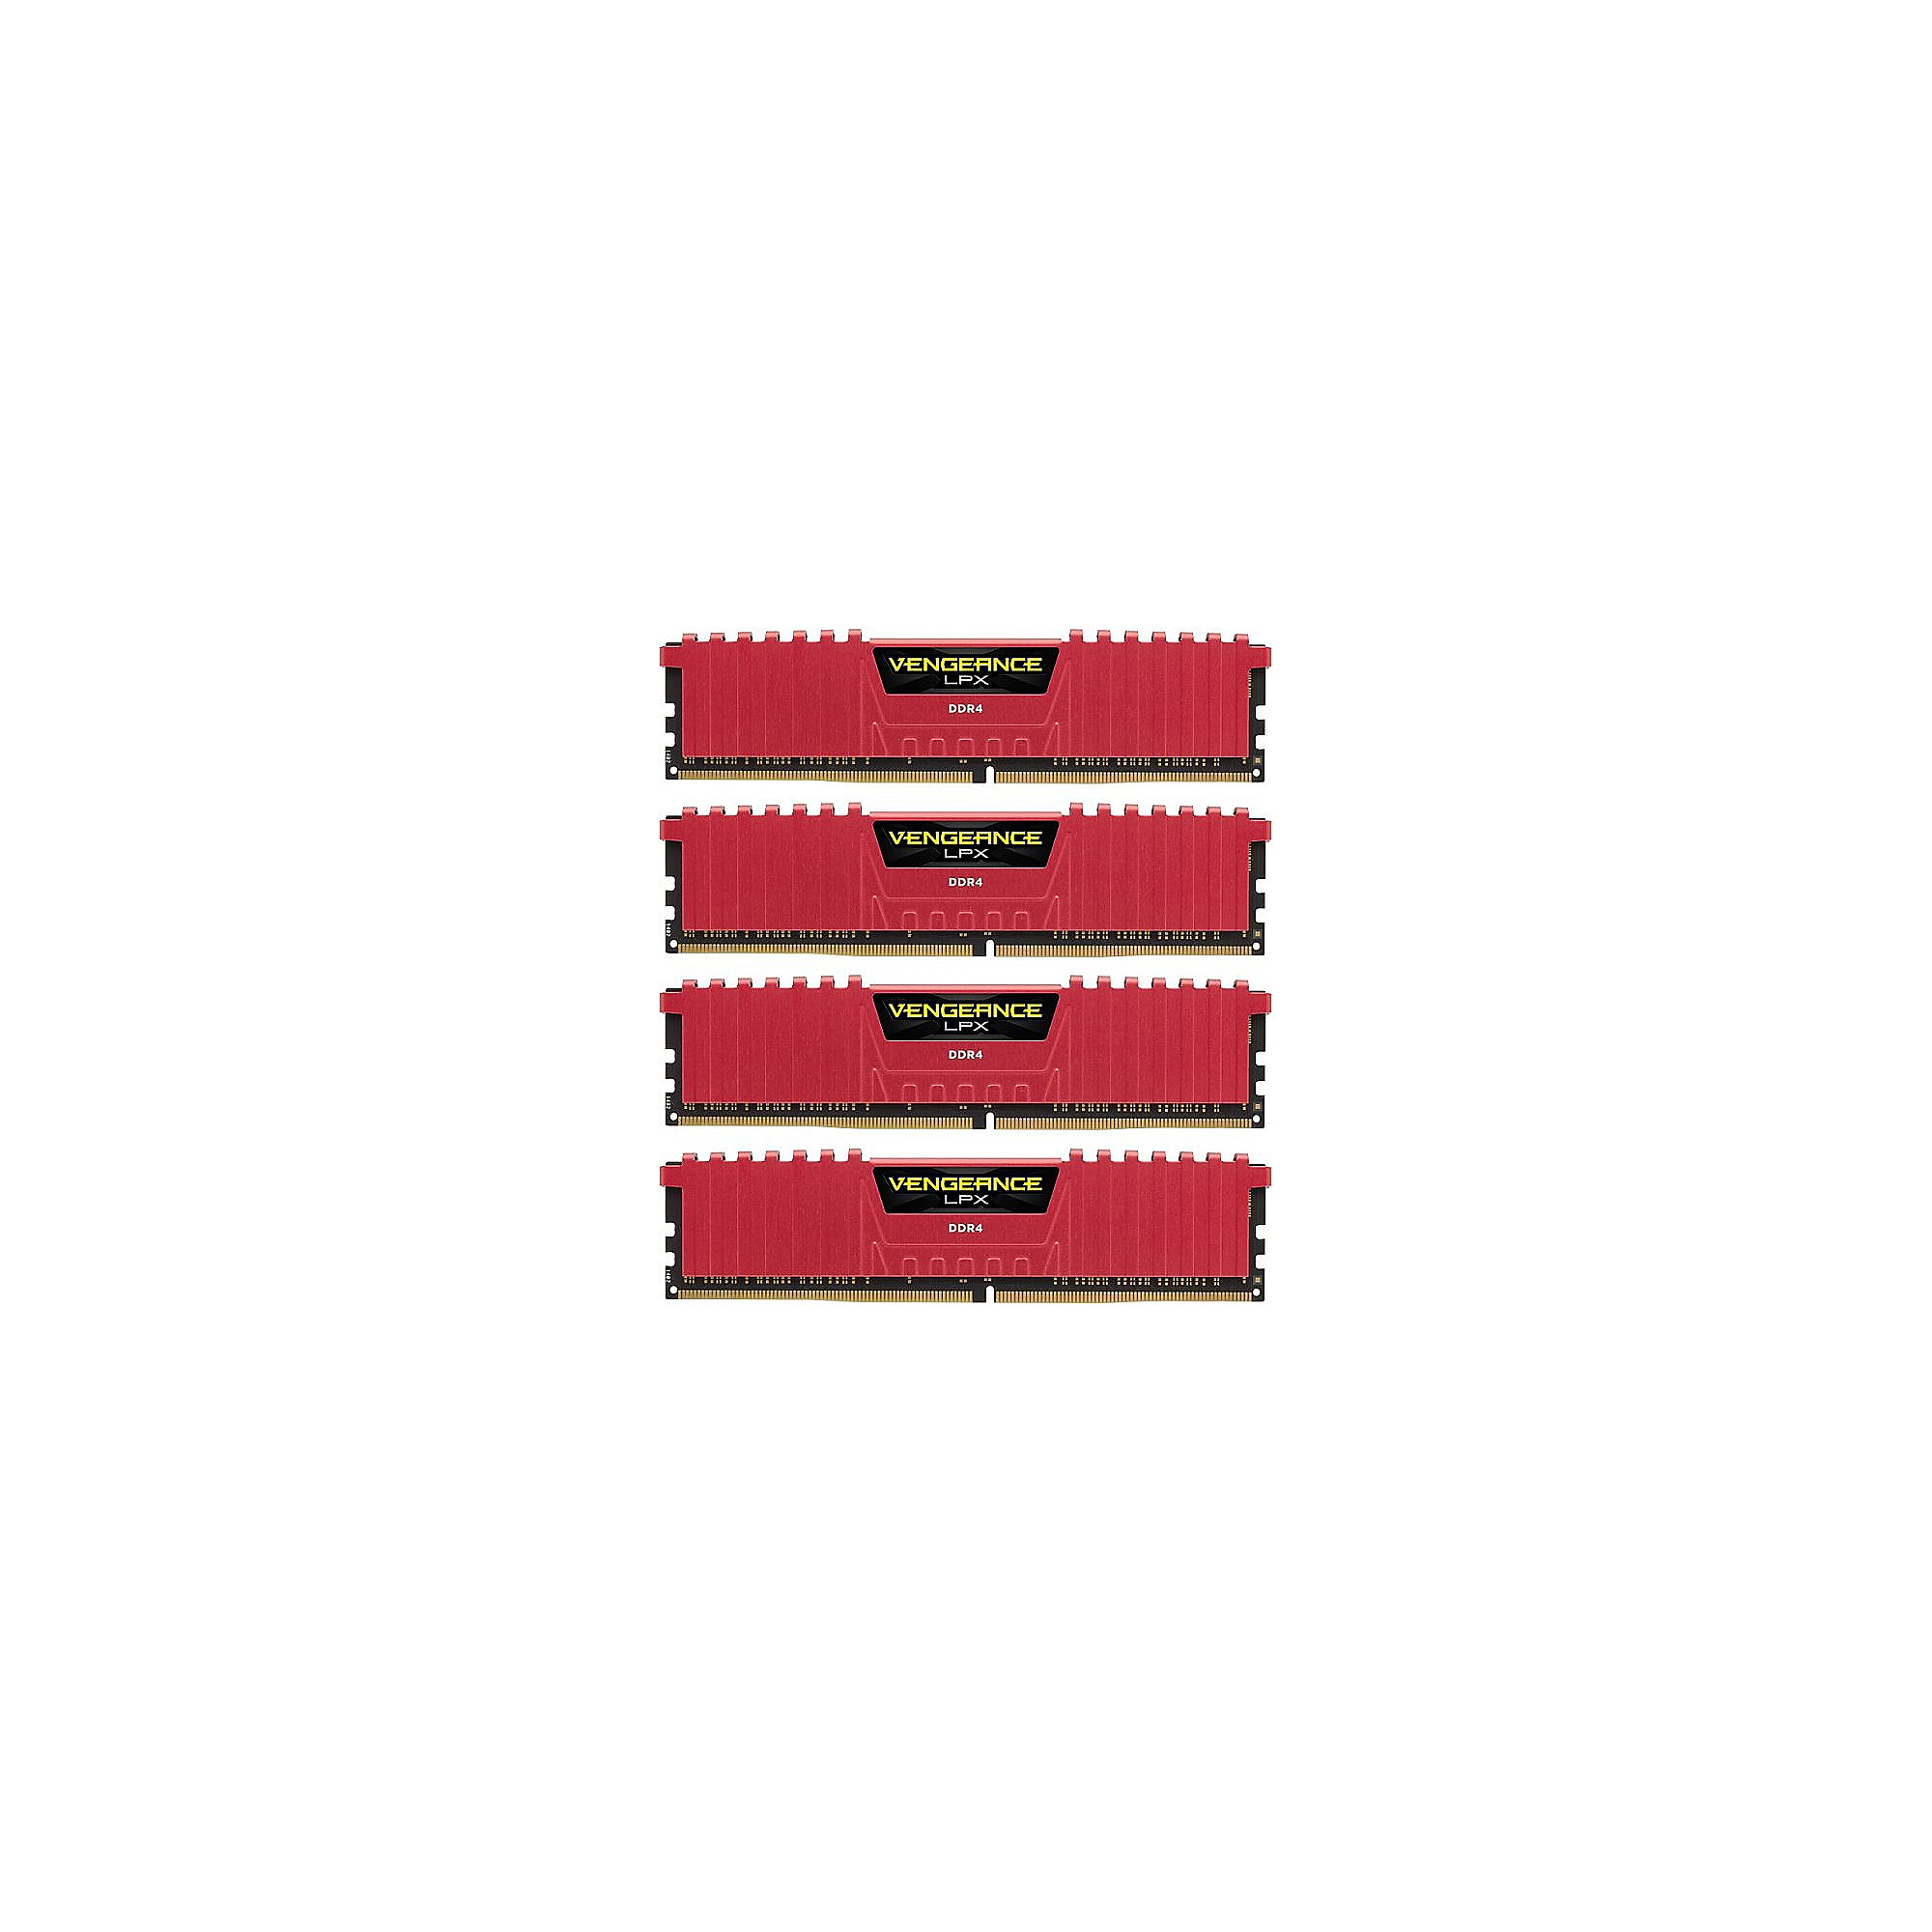 16GB (4x4GB) Corsair Vengeance LPX Red DDR4-32000 RAM CL15 (15-17-17-35)